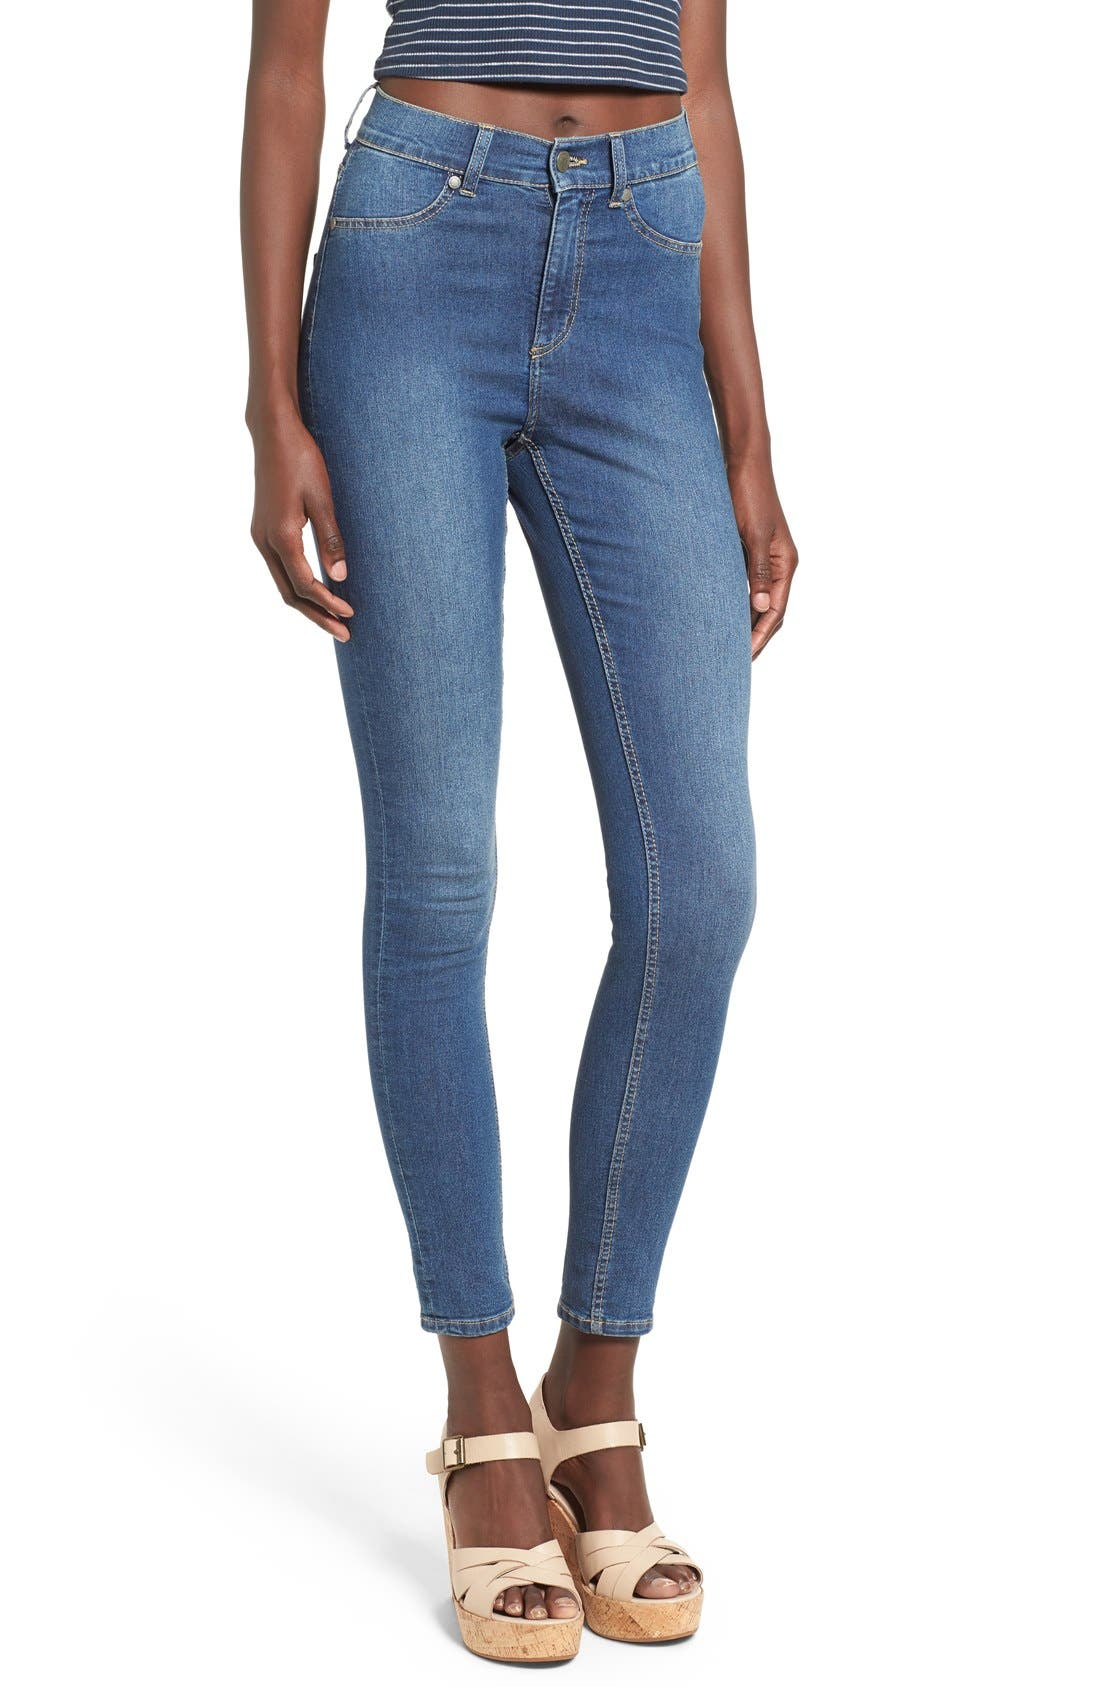 Alternate Image 1 Selected - Cheap Monday 'High Spray' High Rise Skinny Jeans